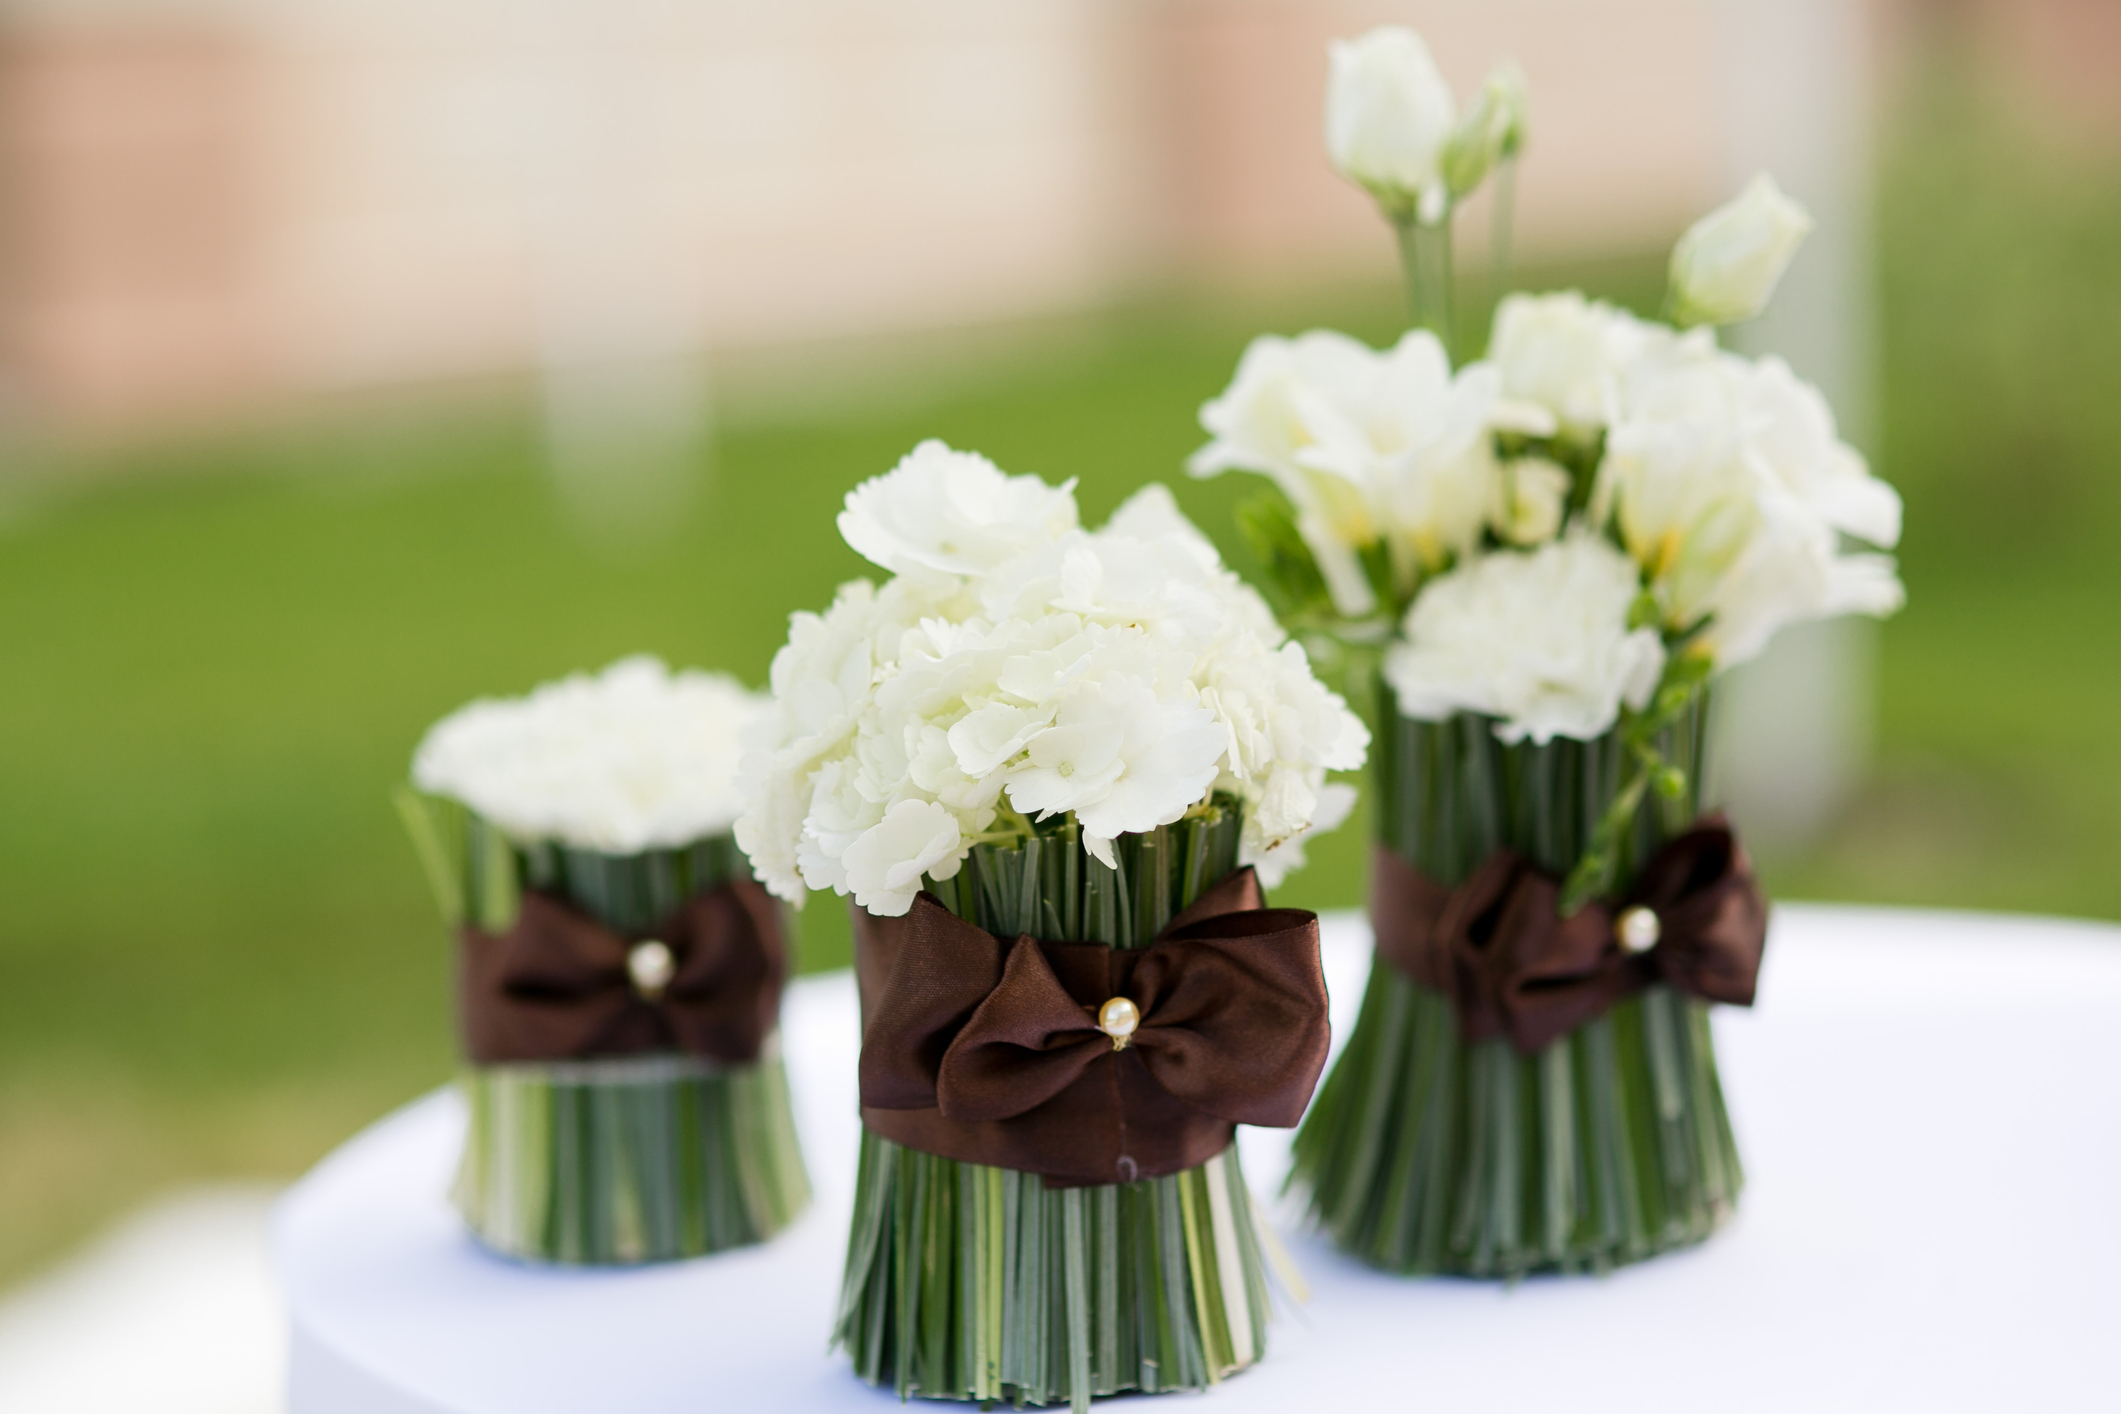 White floral arrangement on a table with white table cloth.